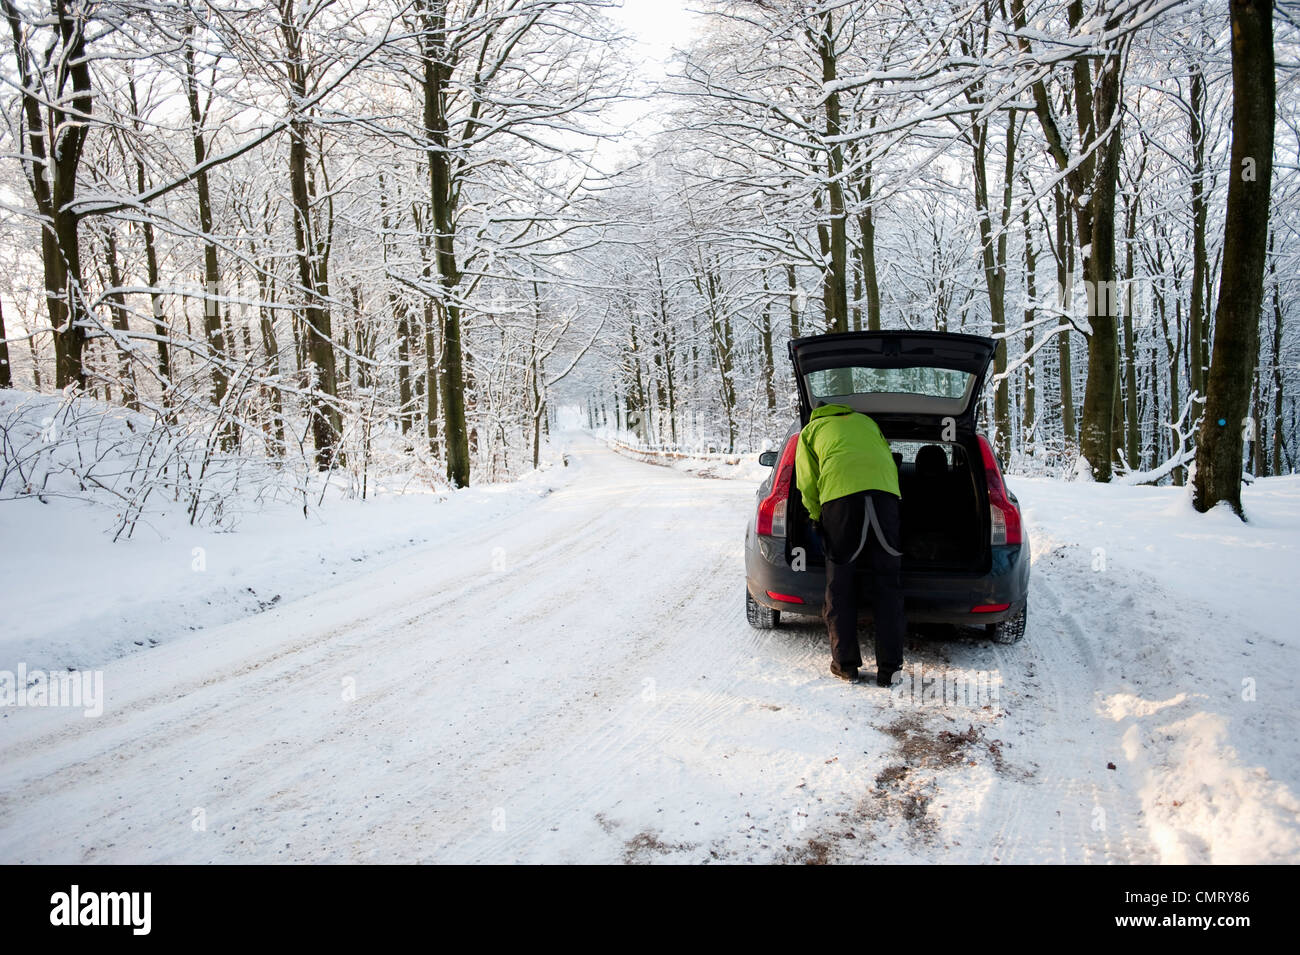 Man packing boot on winter road - Stock Image